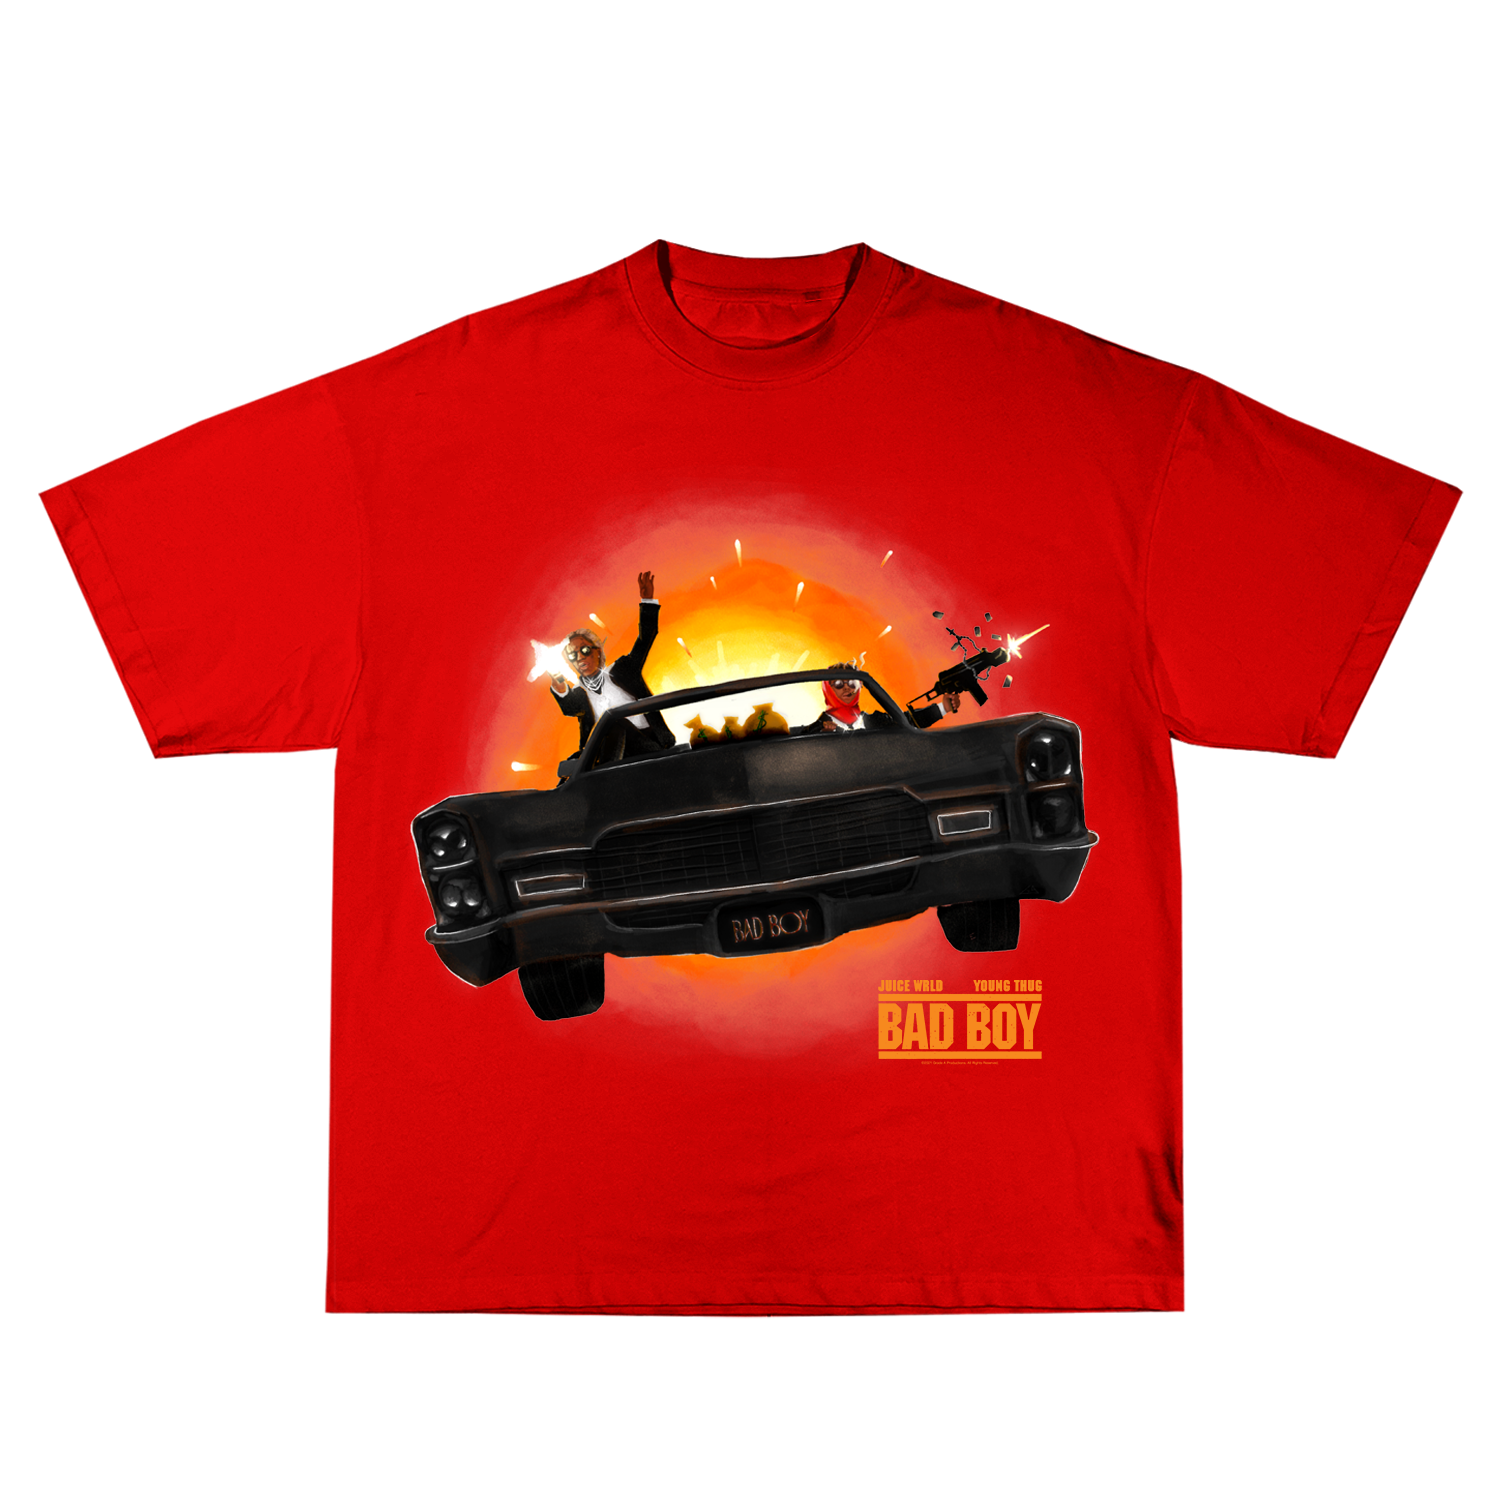 Bad Boy Futuristic Ride Tee